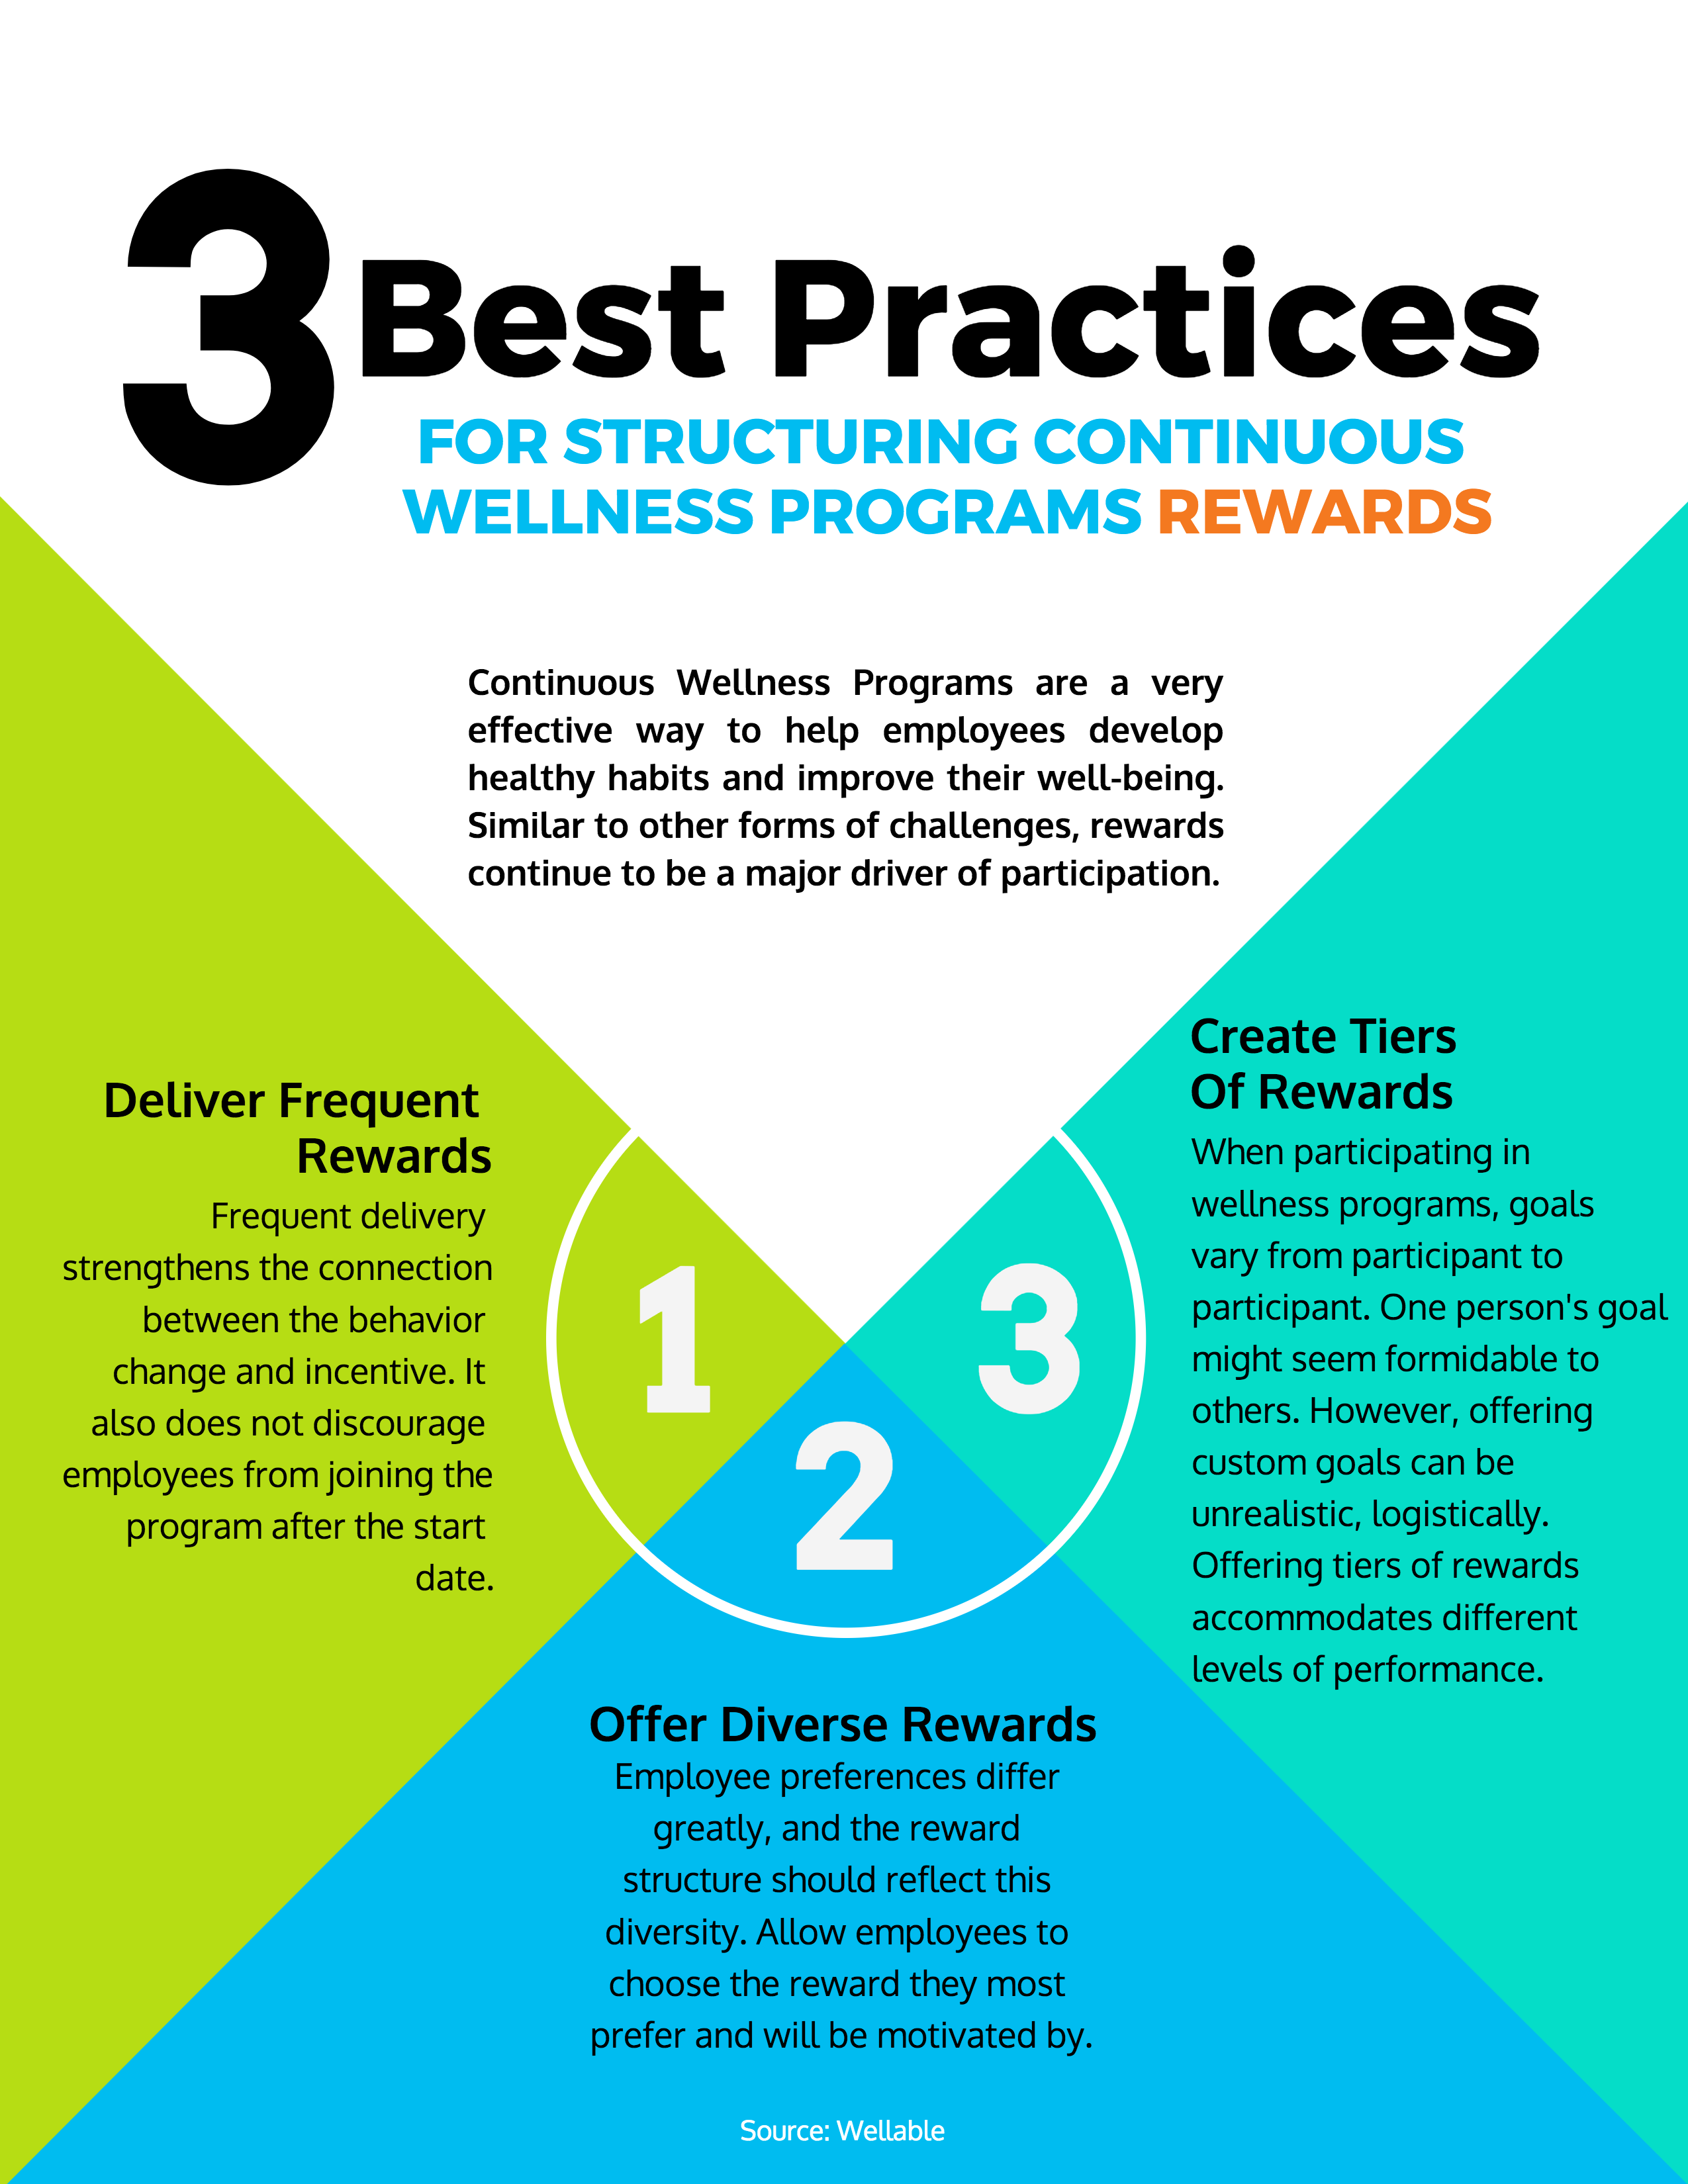 3-best-practices-structuring-continuous-wellness-programs-rewards